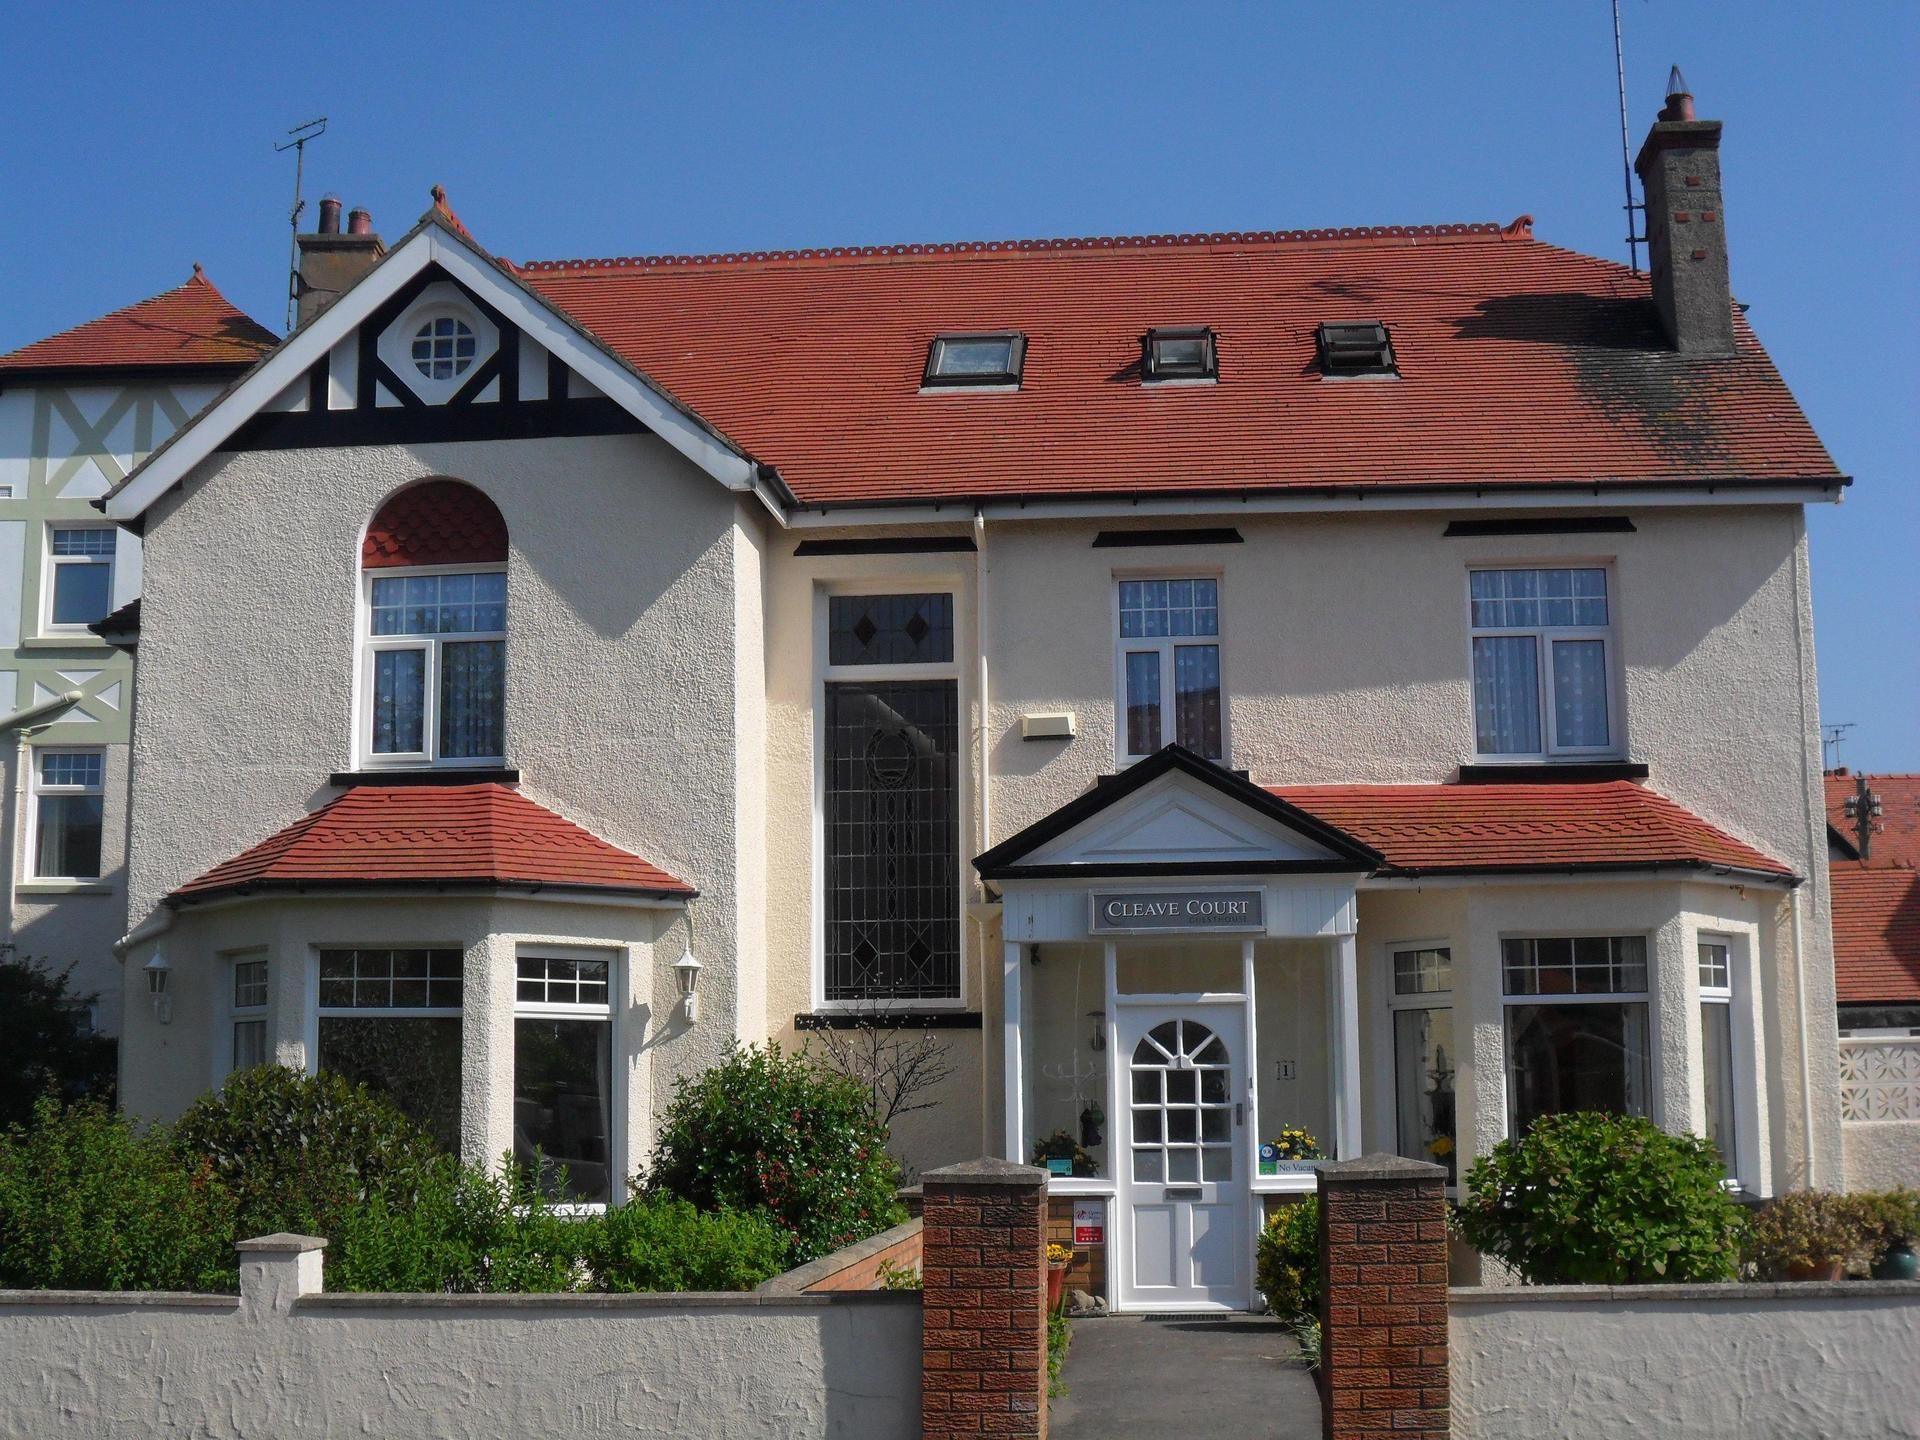 Cleave Court Guest House in Llandudno